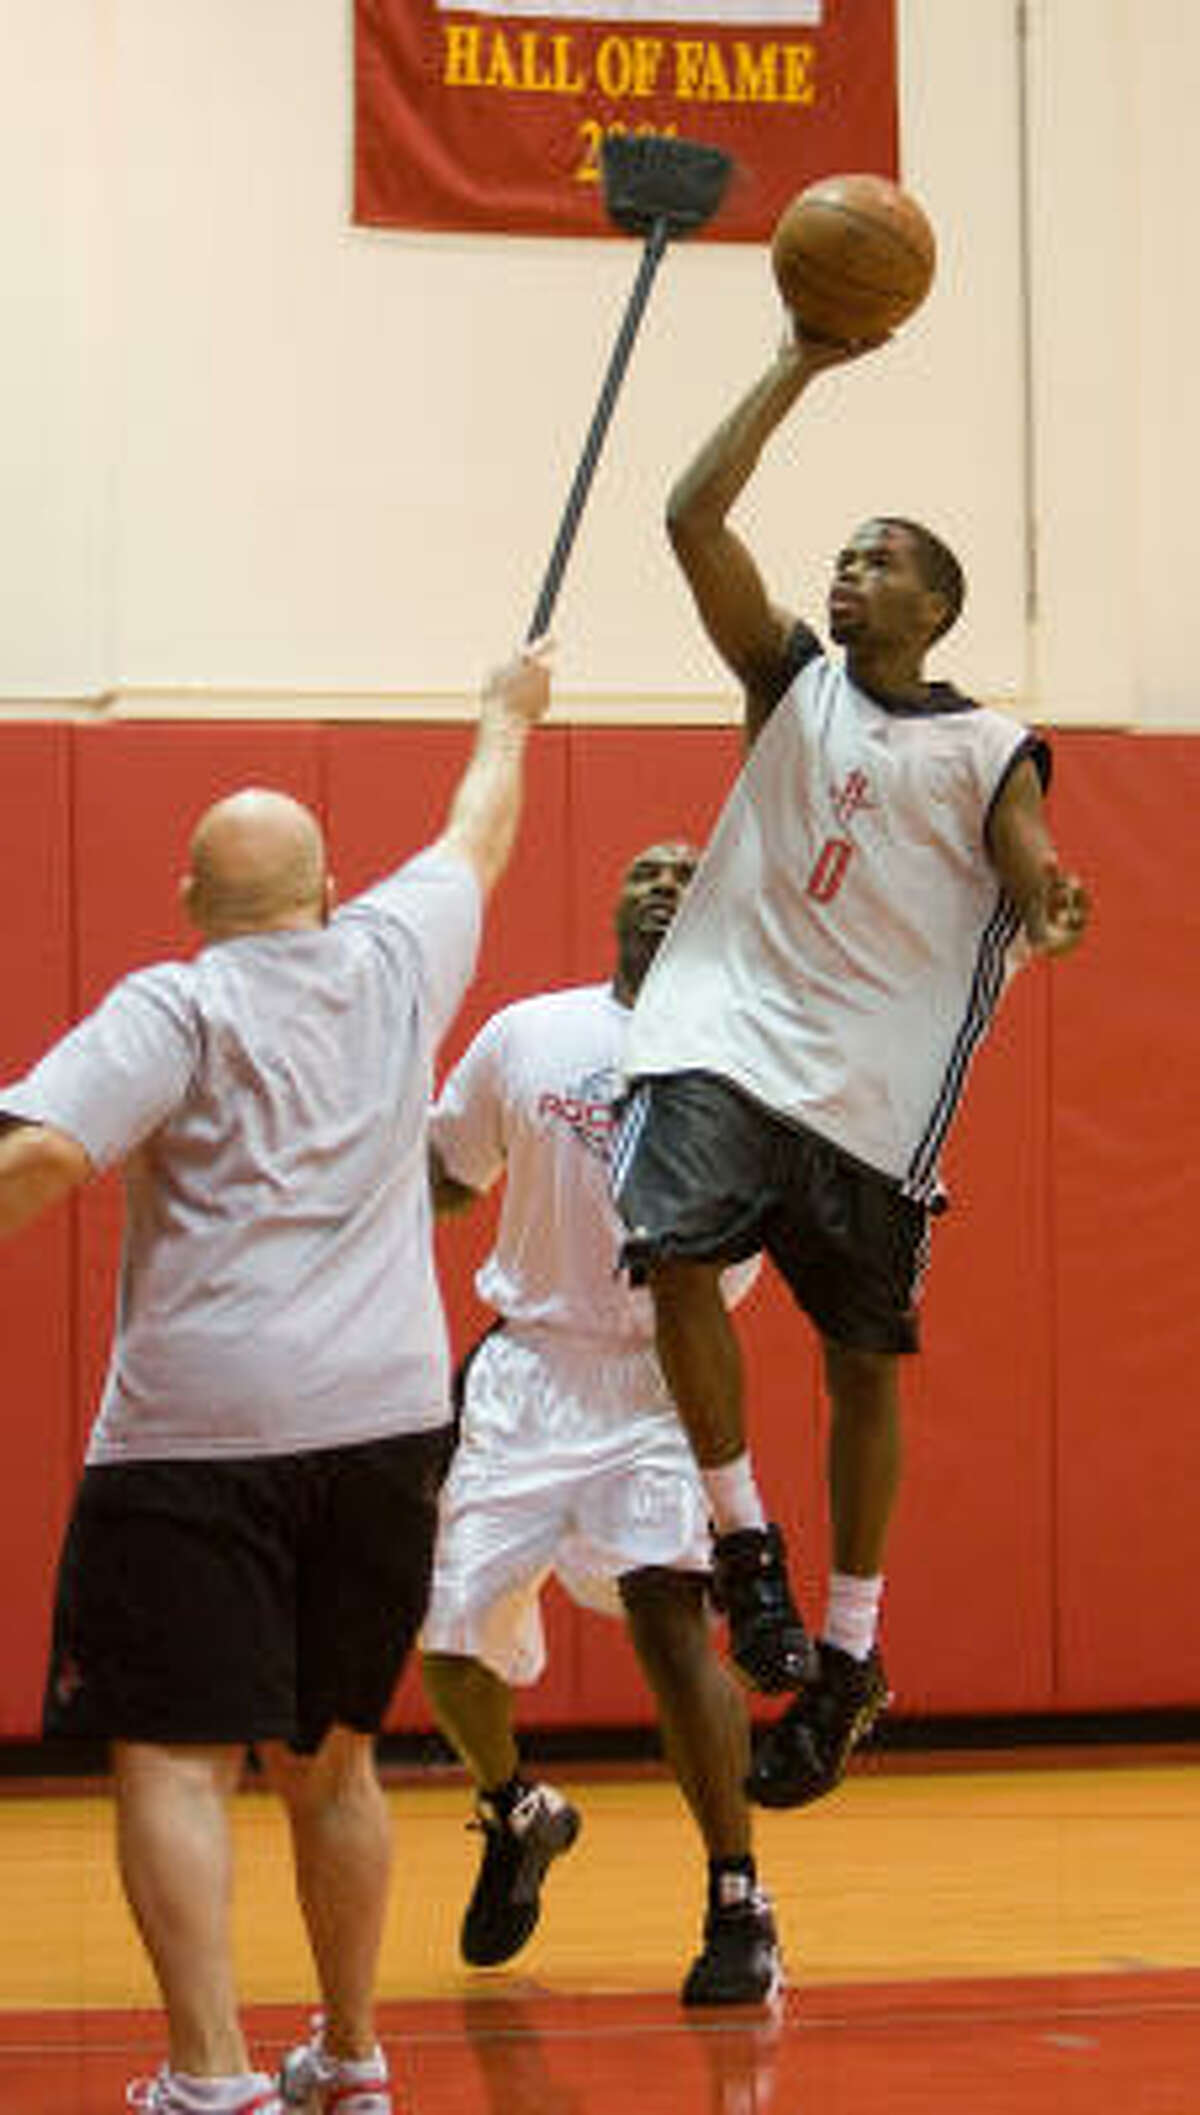 Rockets guard Aaron Brooks, center, works on his game with strength coaches and player development personnel during practice.